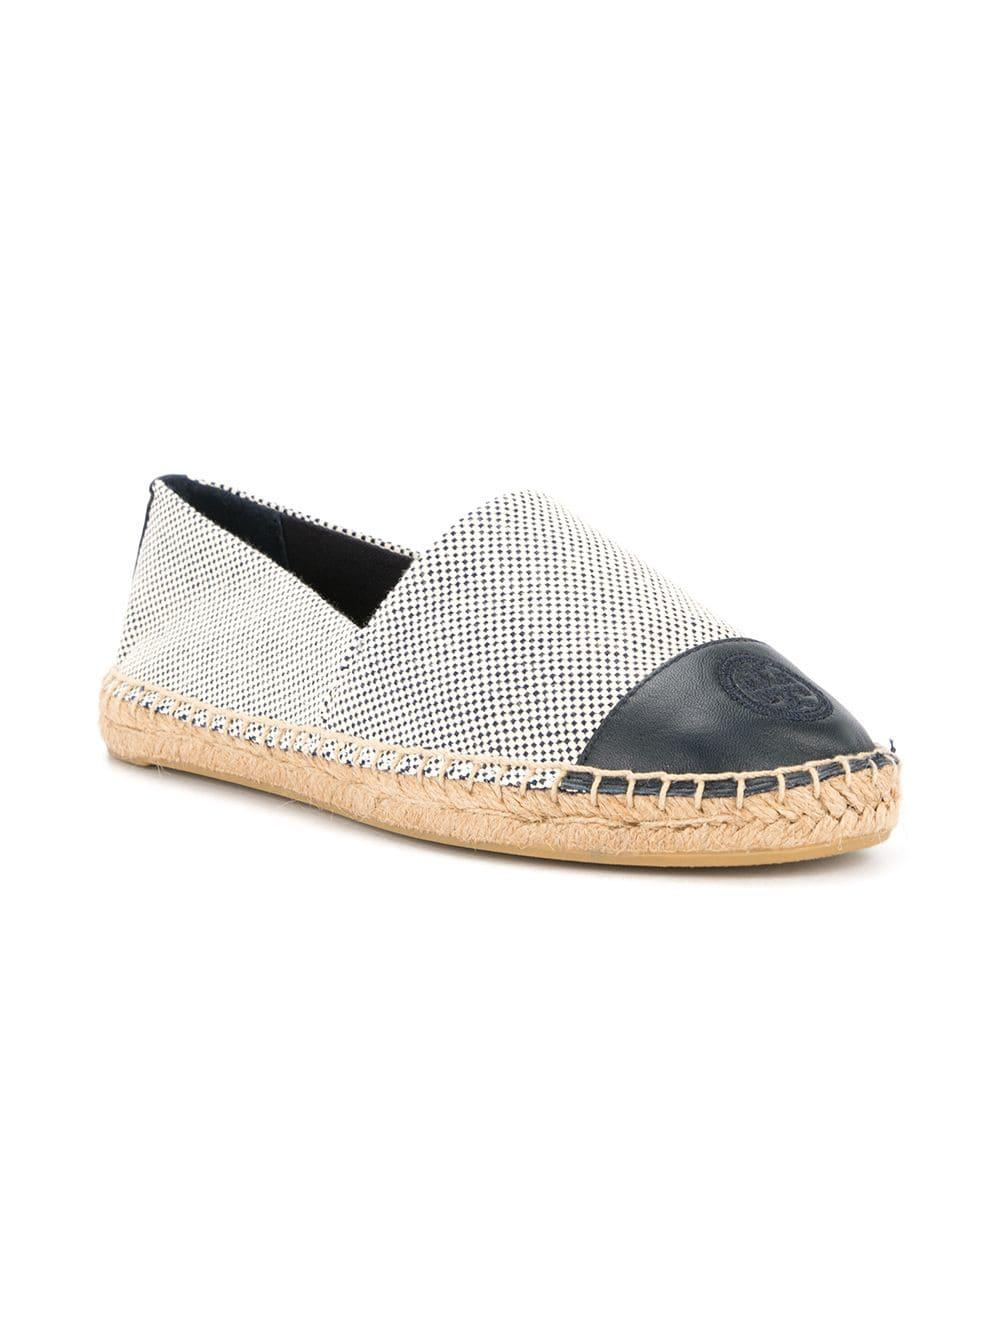 32aa64792af3 Tory Burch Colour-block Espadrilles in White - Lyst